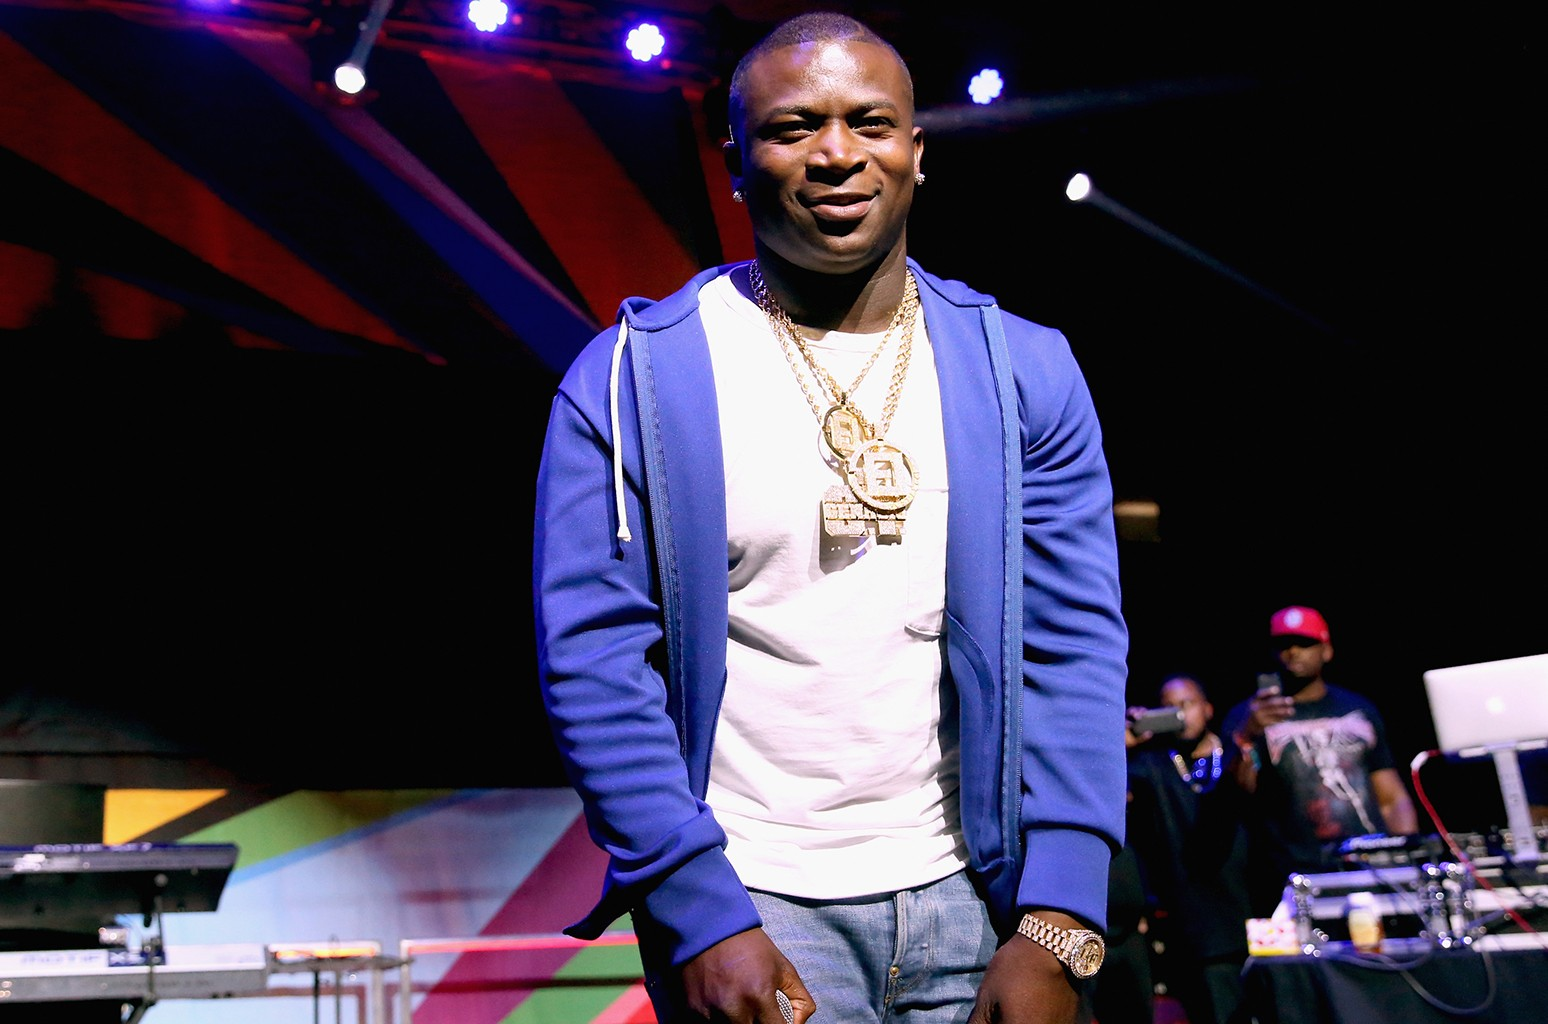 O.T. Genasis performs during the 2016 BET Experience